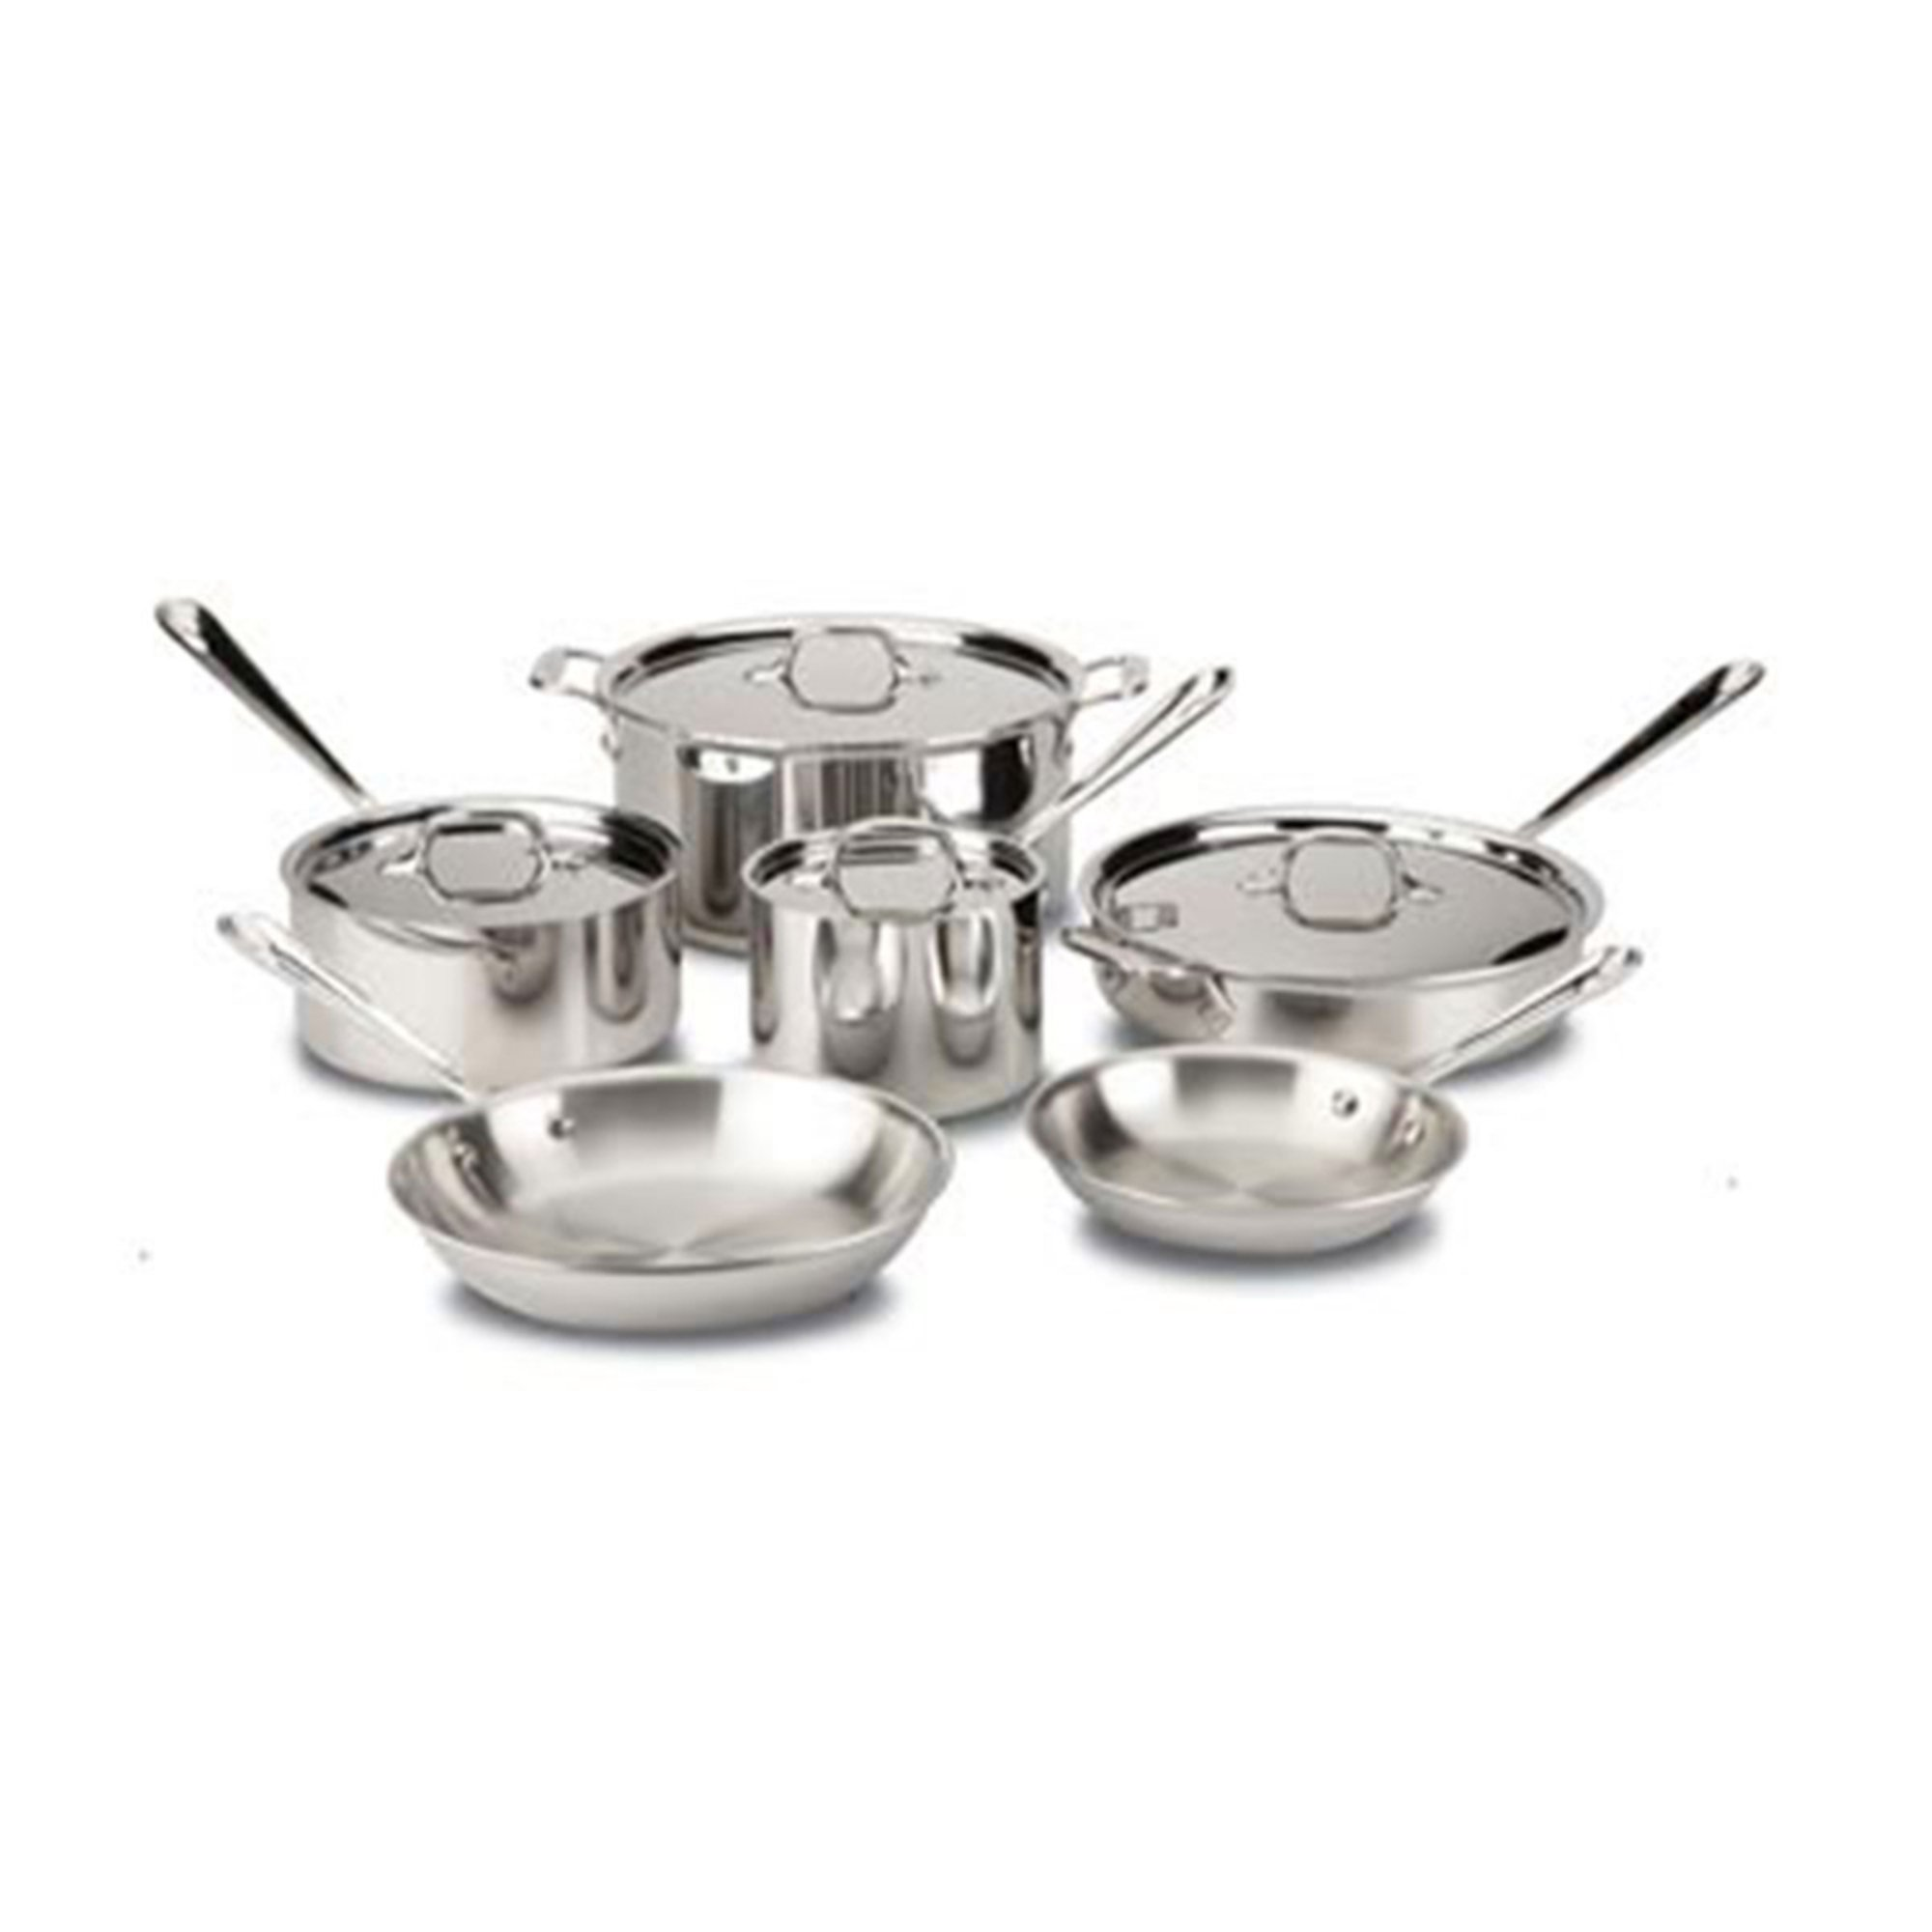 All clad stainless steel cookware sets - Cookware Sets 0